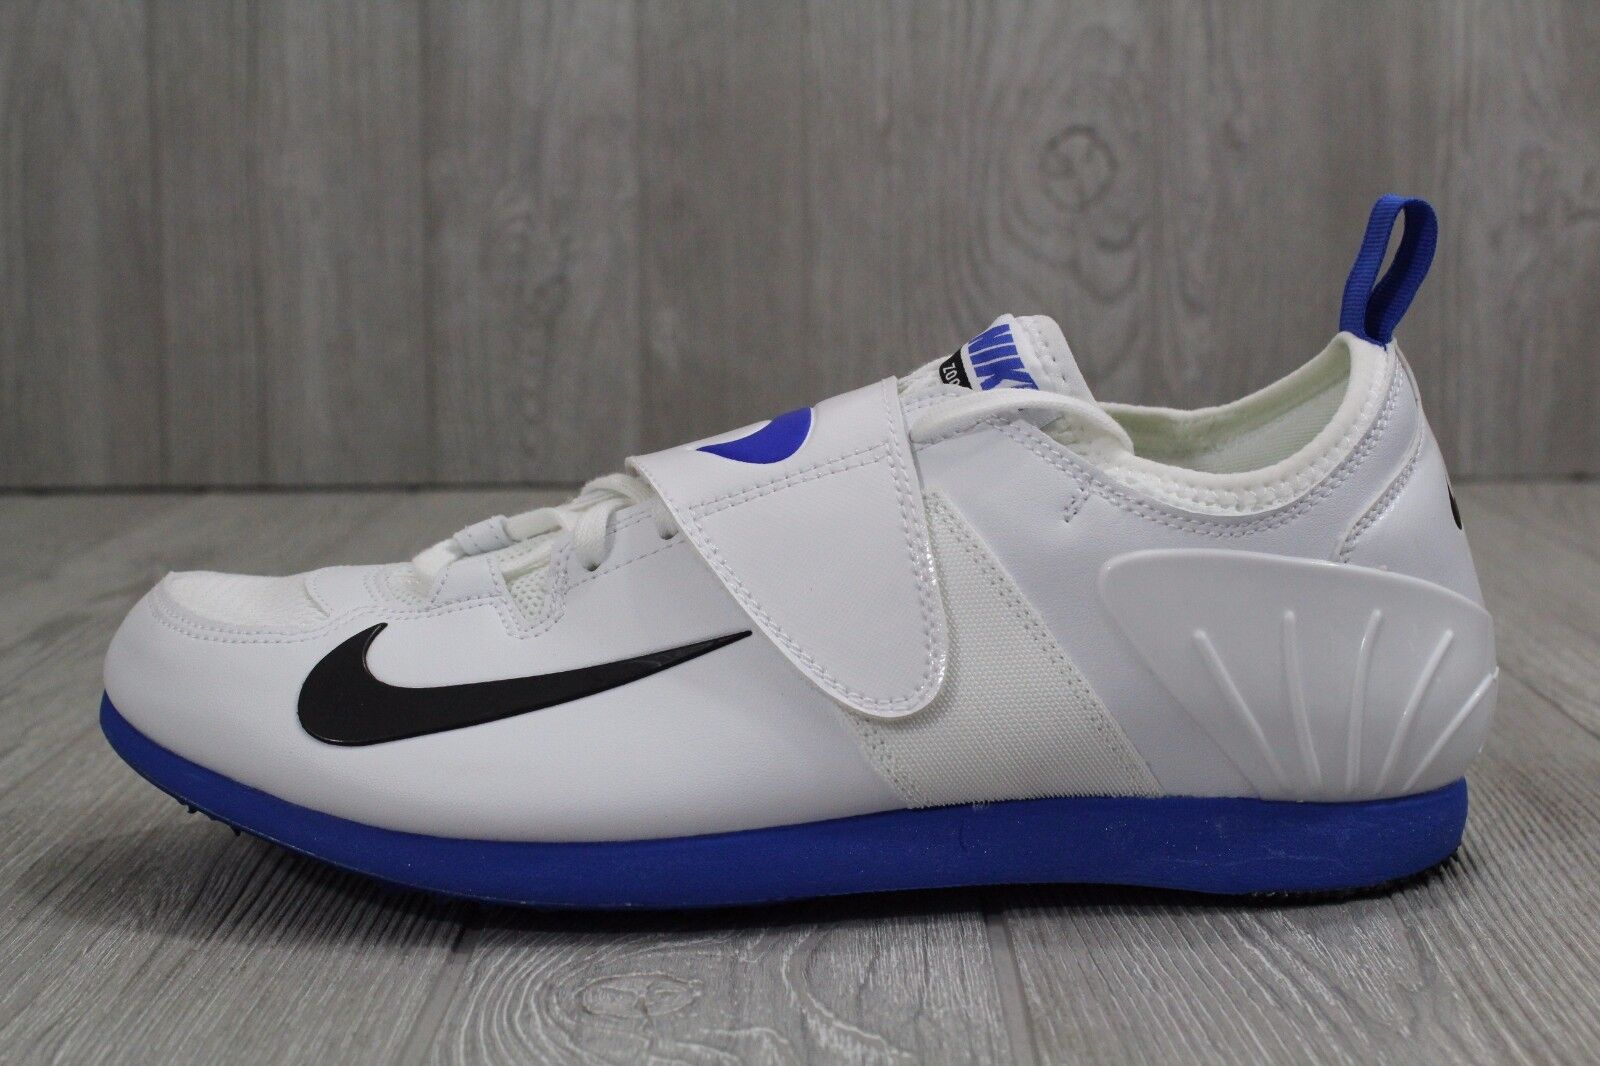 585c449c7ecf 24 New Mens Nike Zoom PV II Pole Vault Spikes Spikes Spikes Shoes White  Blue 317404